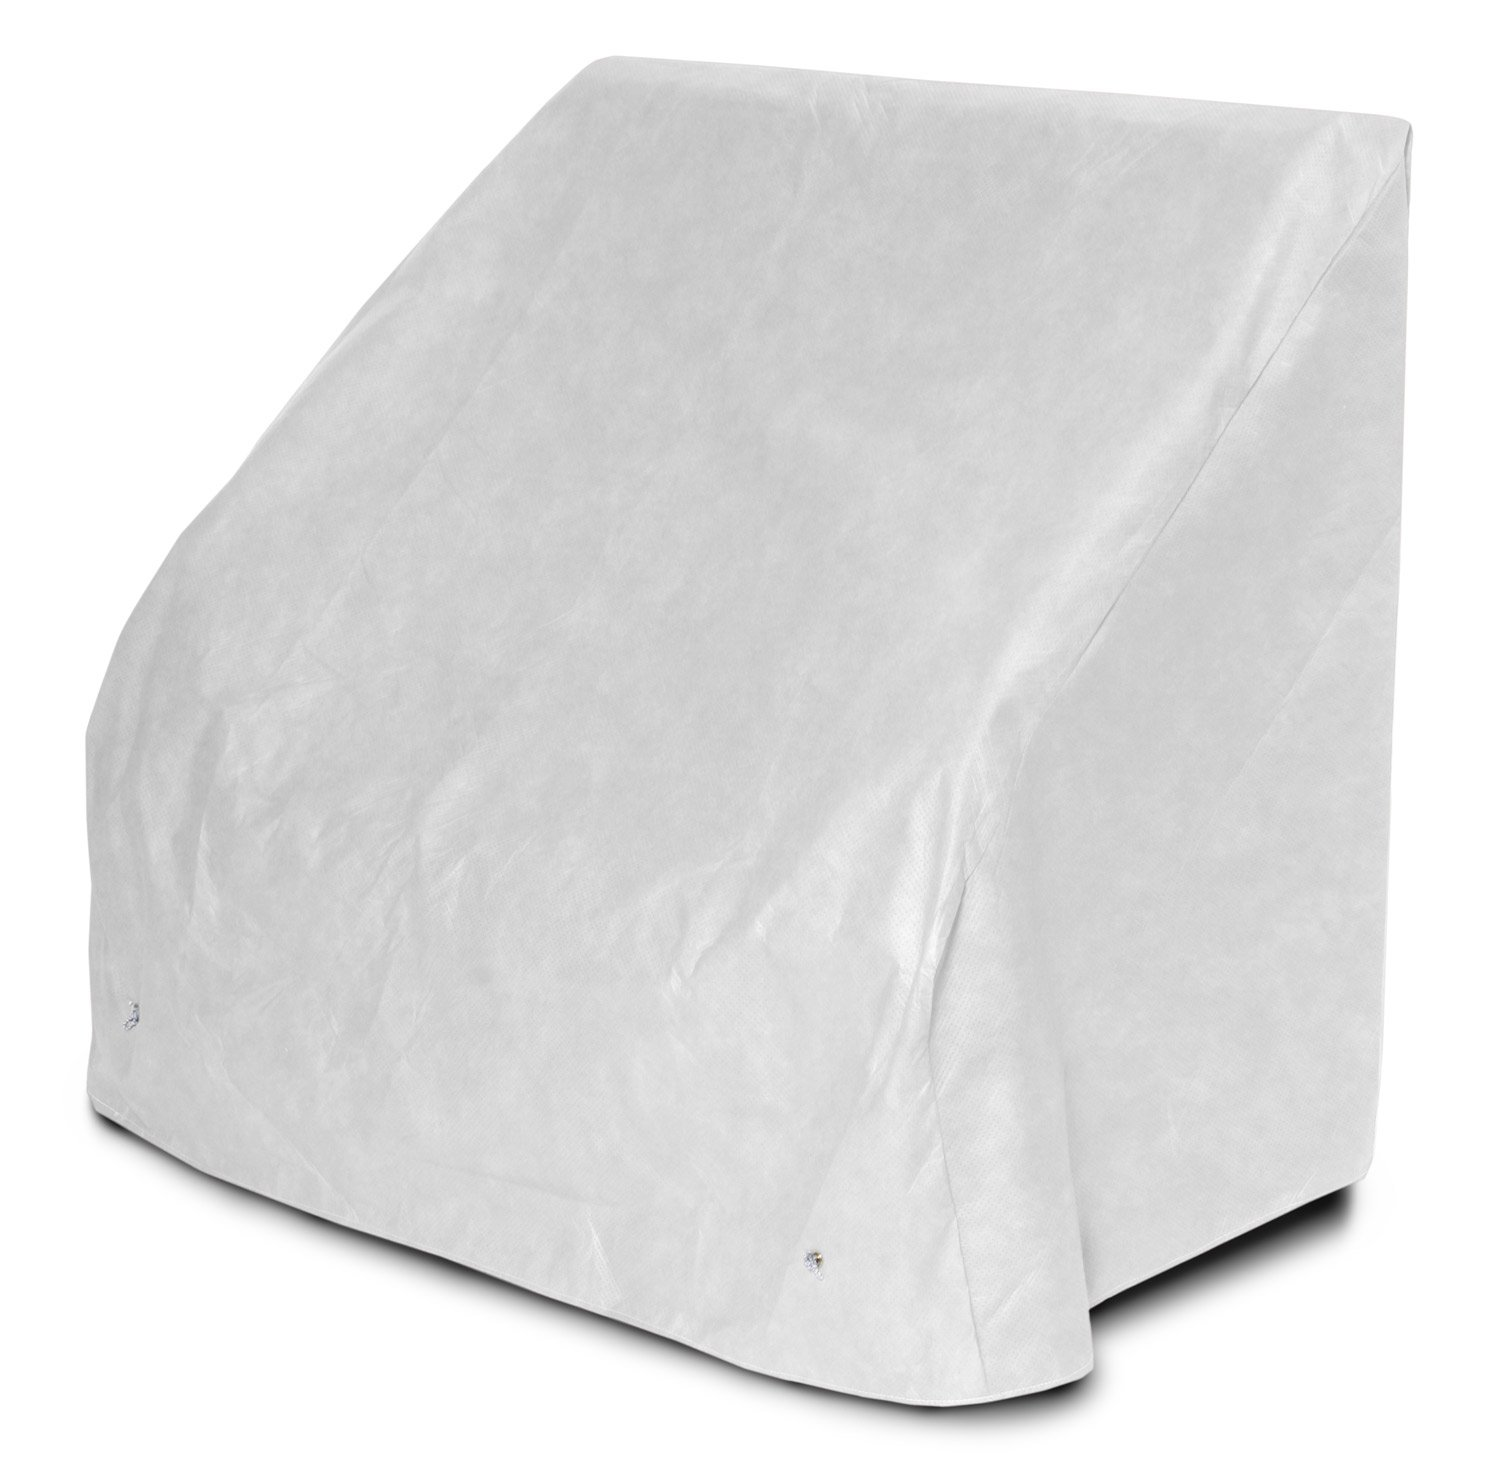 KoverRoos DuPont Tyvek 24204 5-Feet Bench/Glider Cover, 75-Inch Width by 28-Inch Diameter by 37-Inch Height, White by KOVERROOS